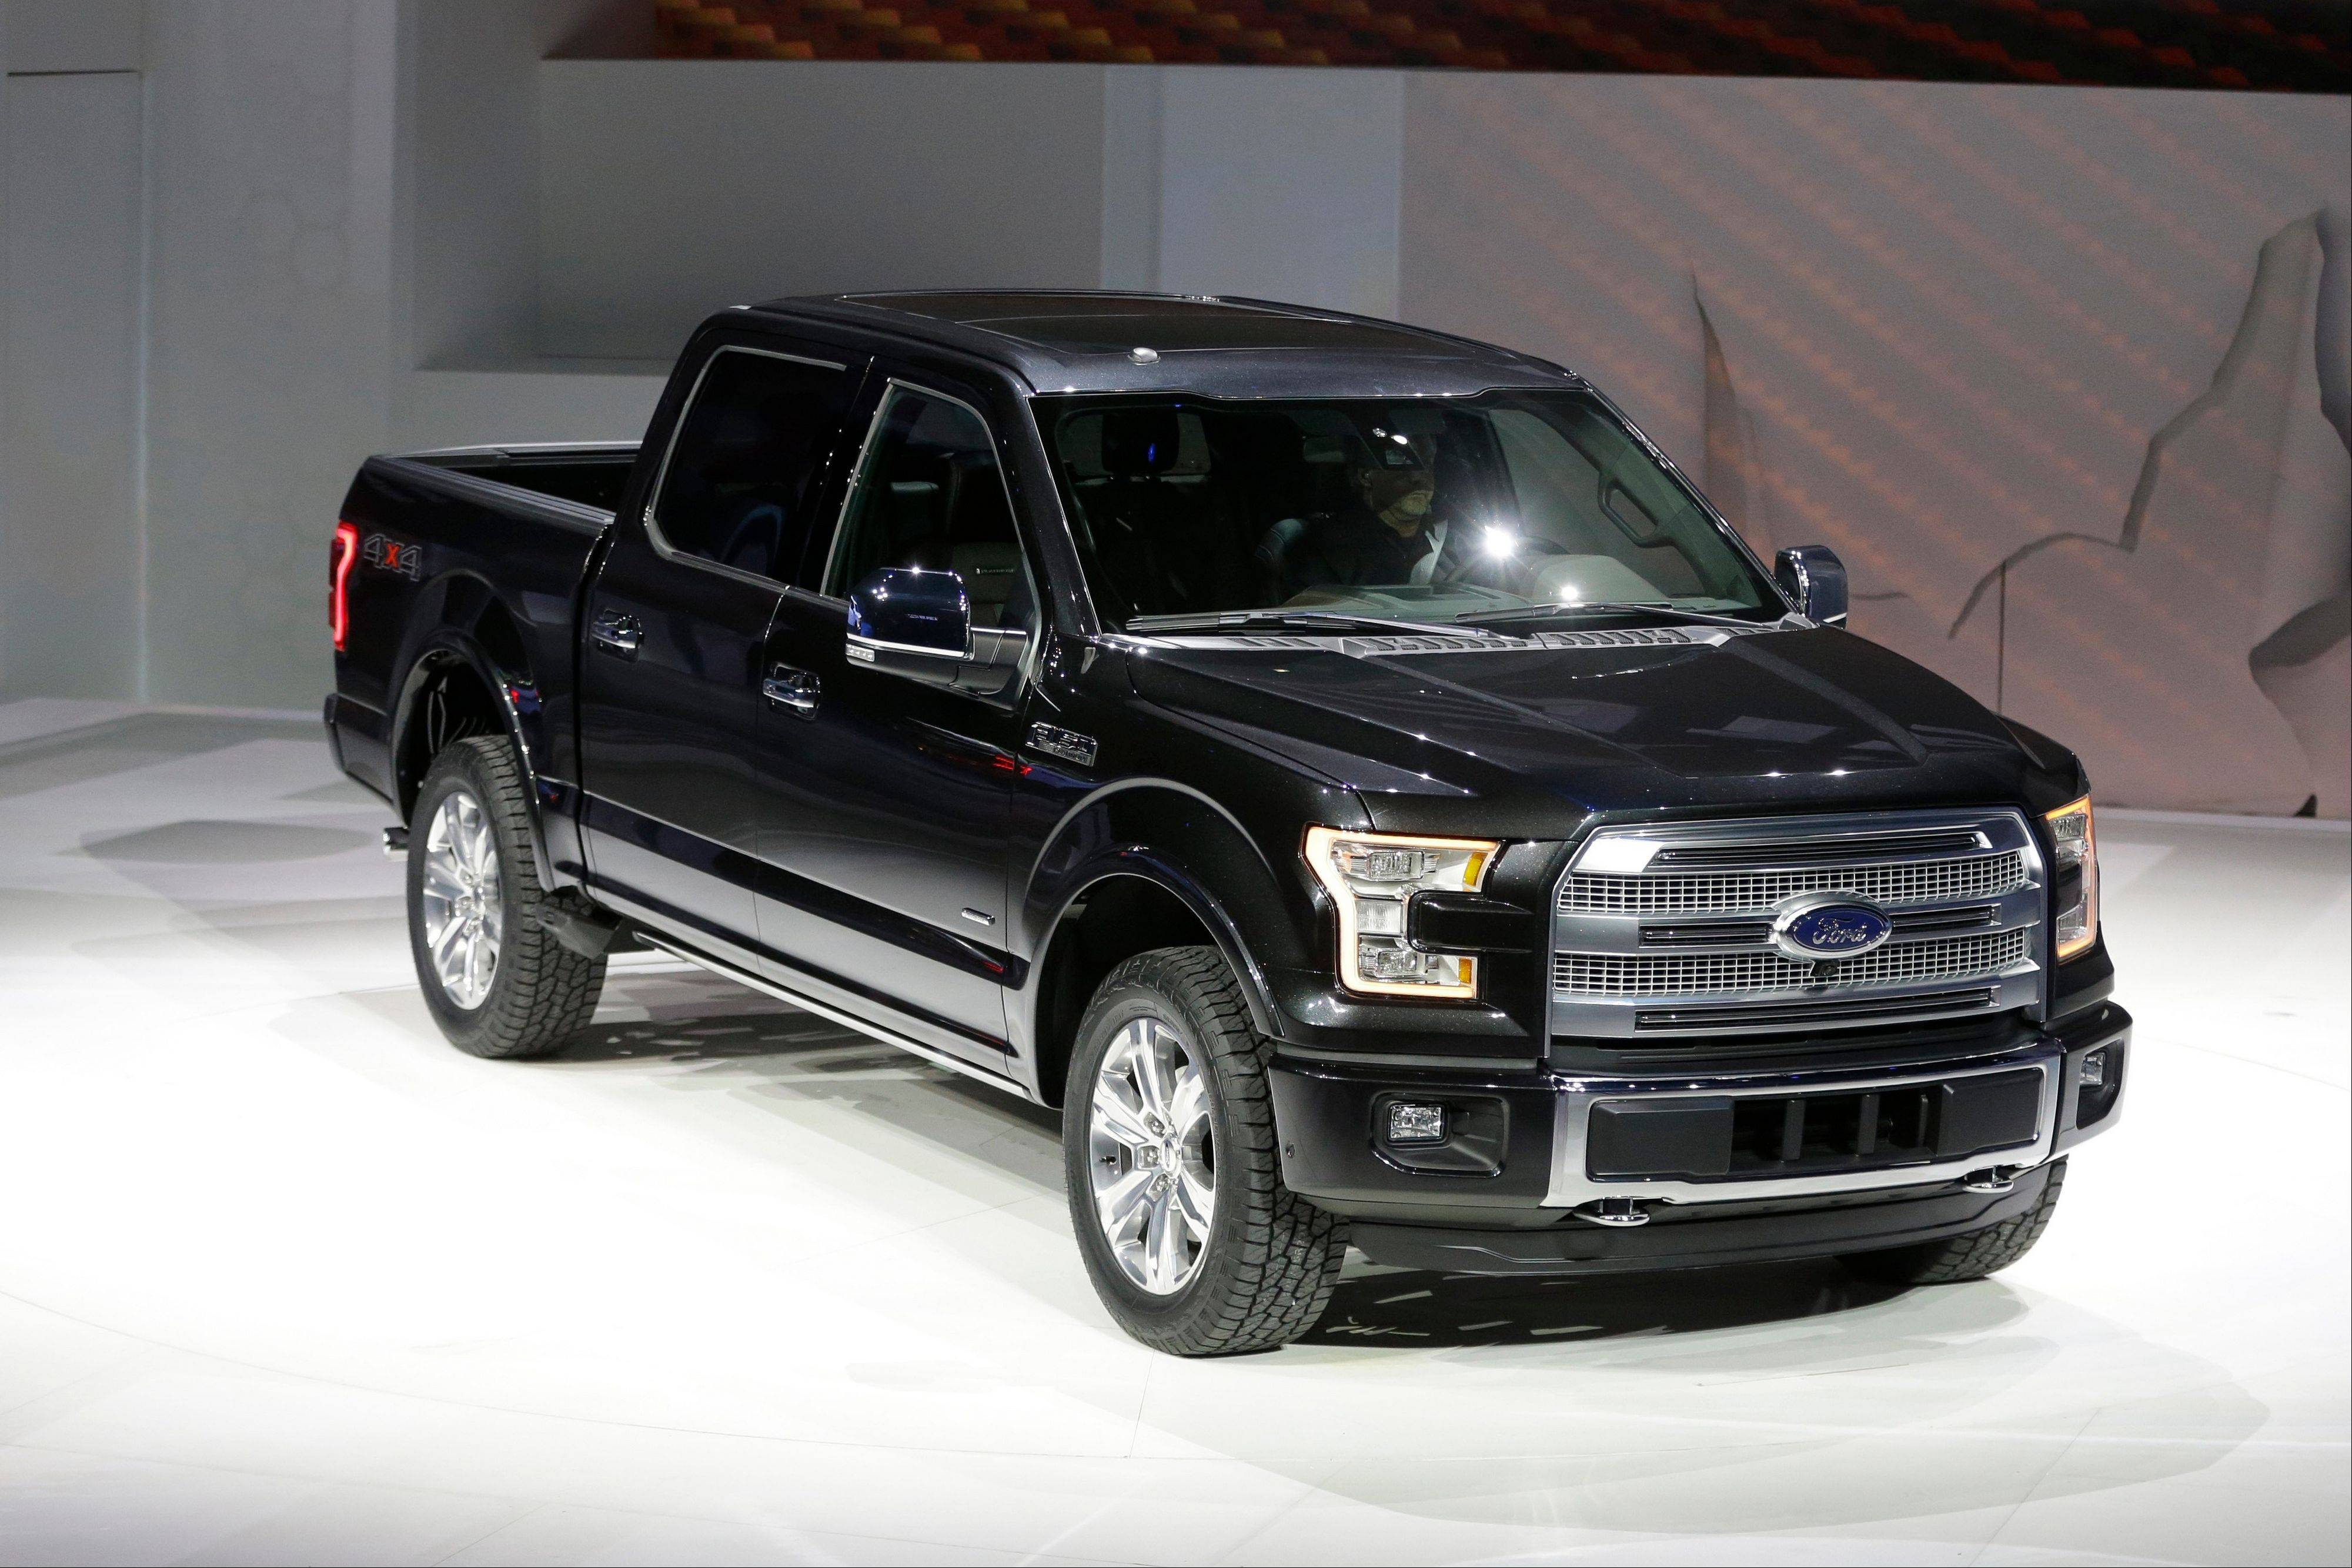 Ford unveils its new F-150 with a body built almost entirely out of aluminum at the North American International Auto Show in Detroit.